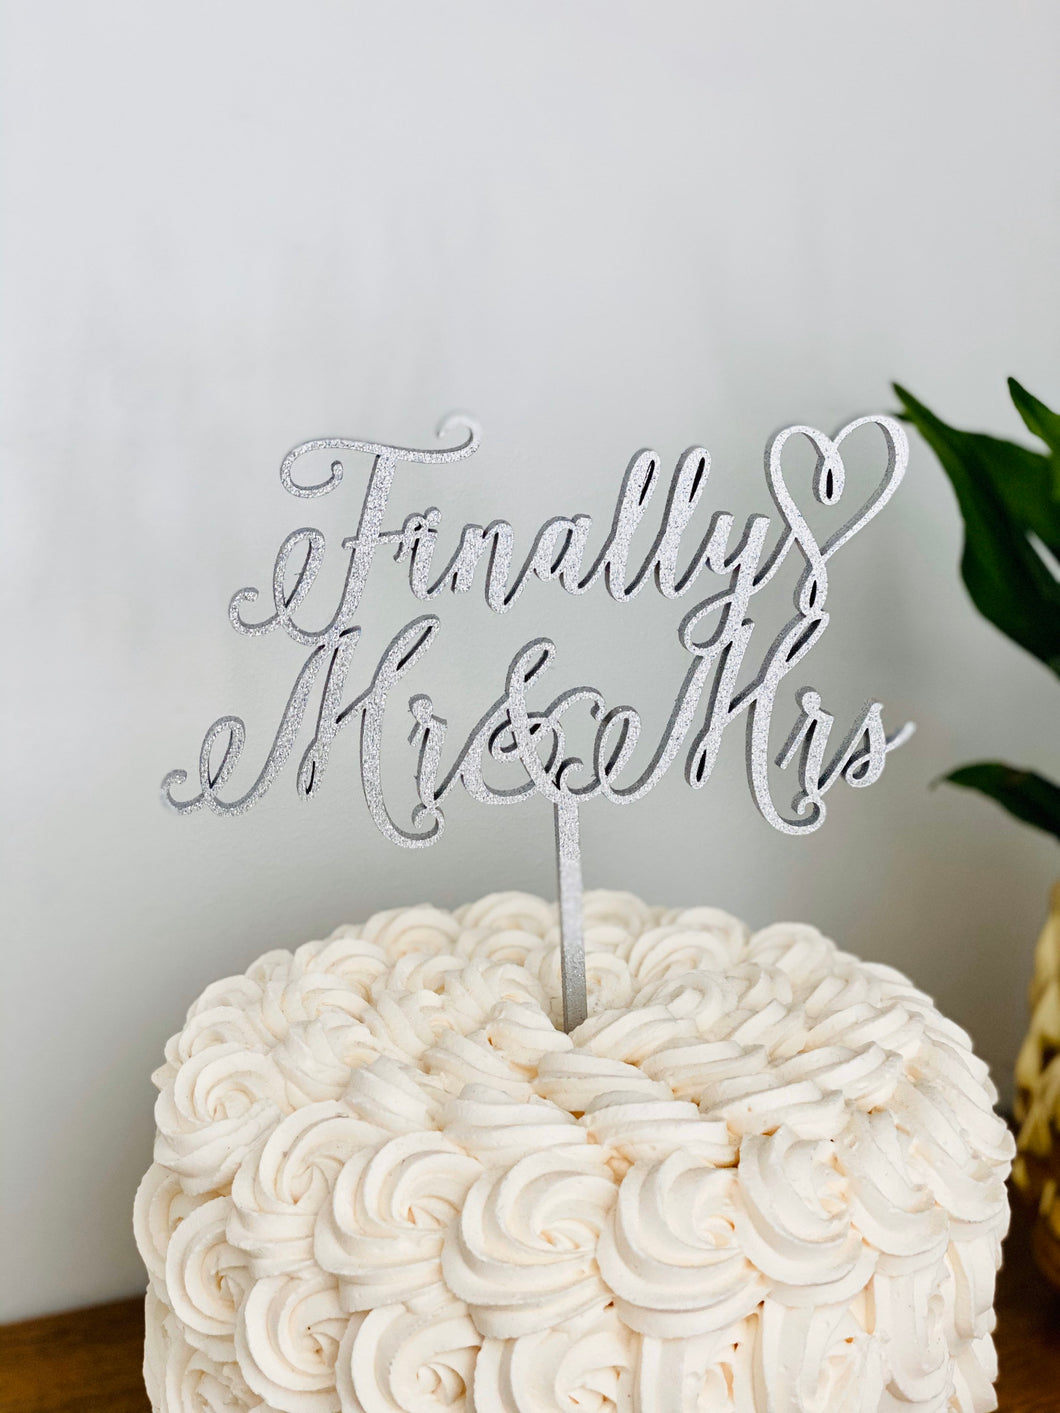 Finally Mr & Mrs Cake Topper, 6